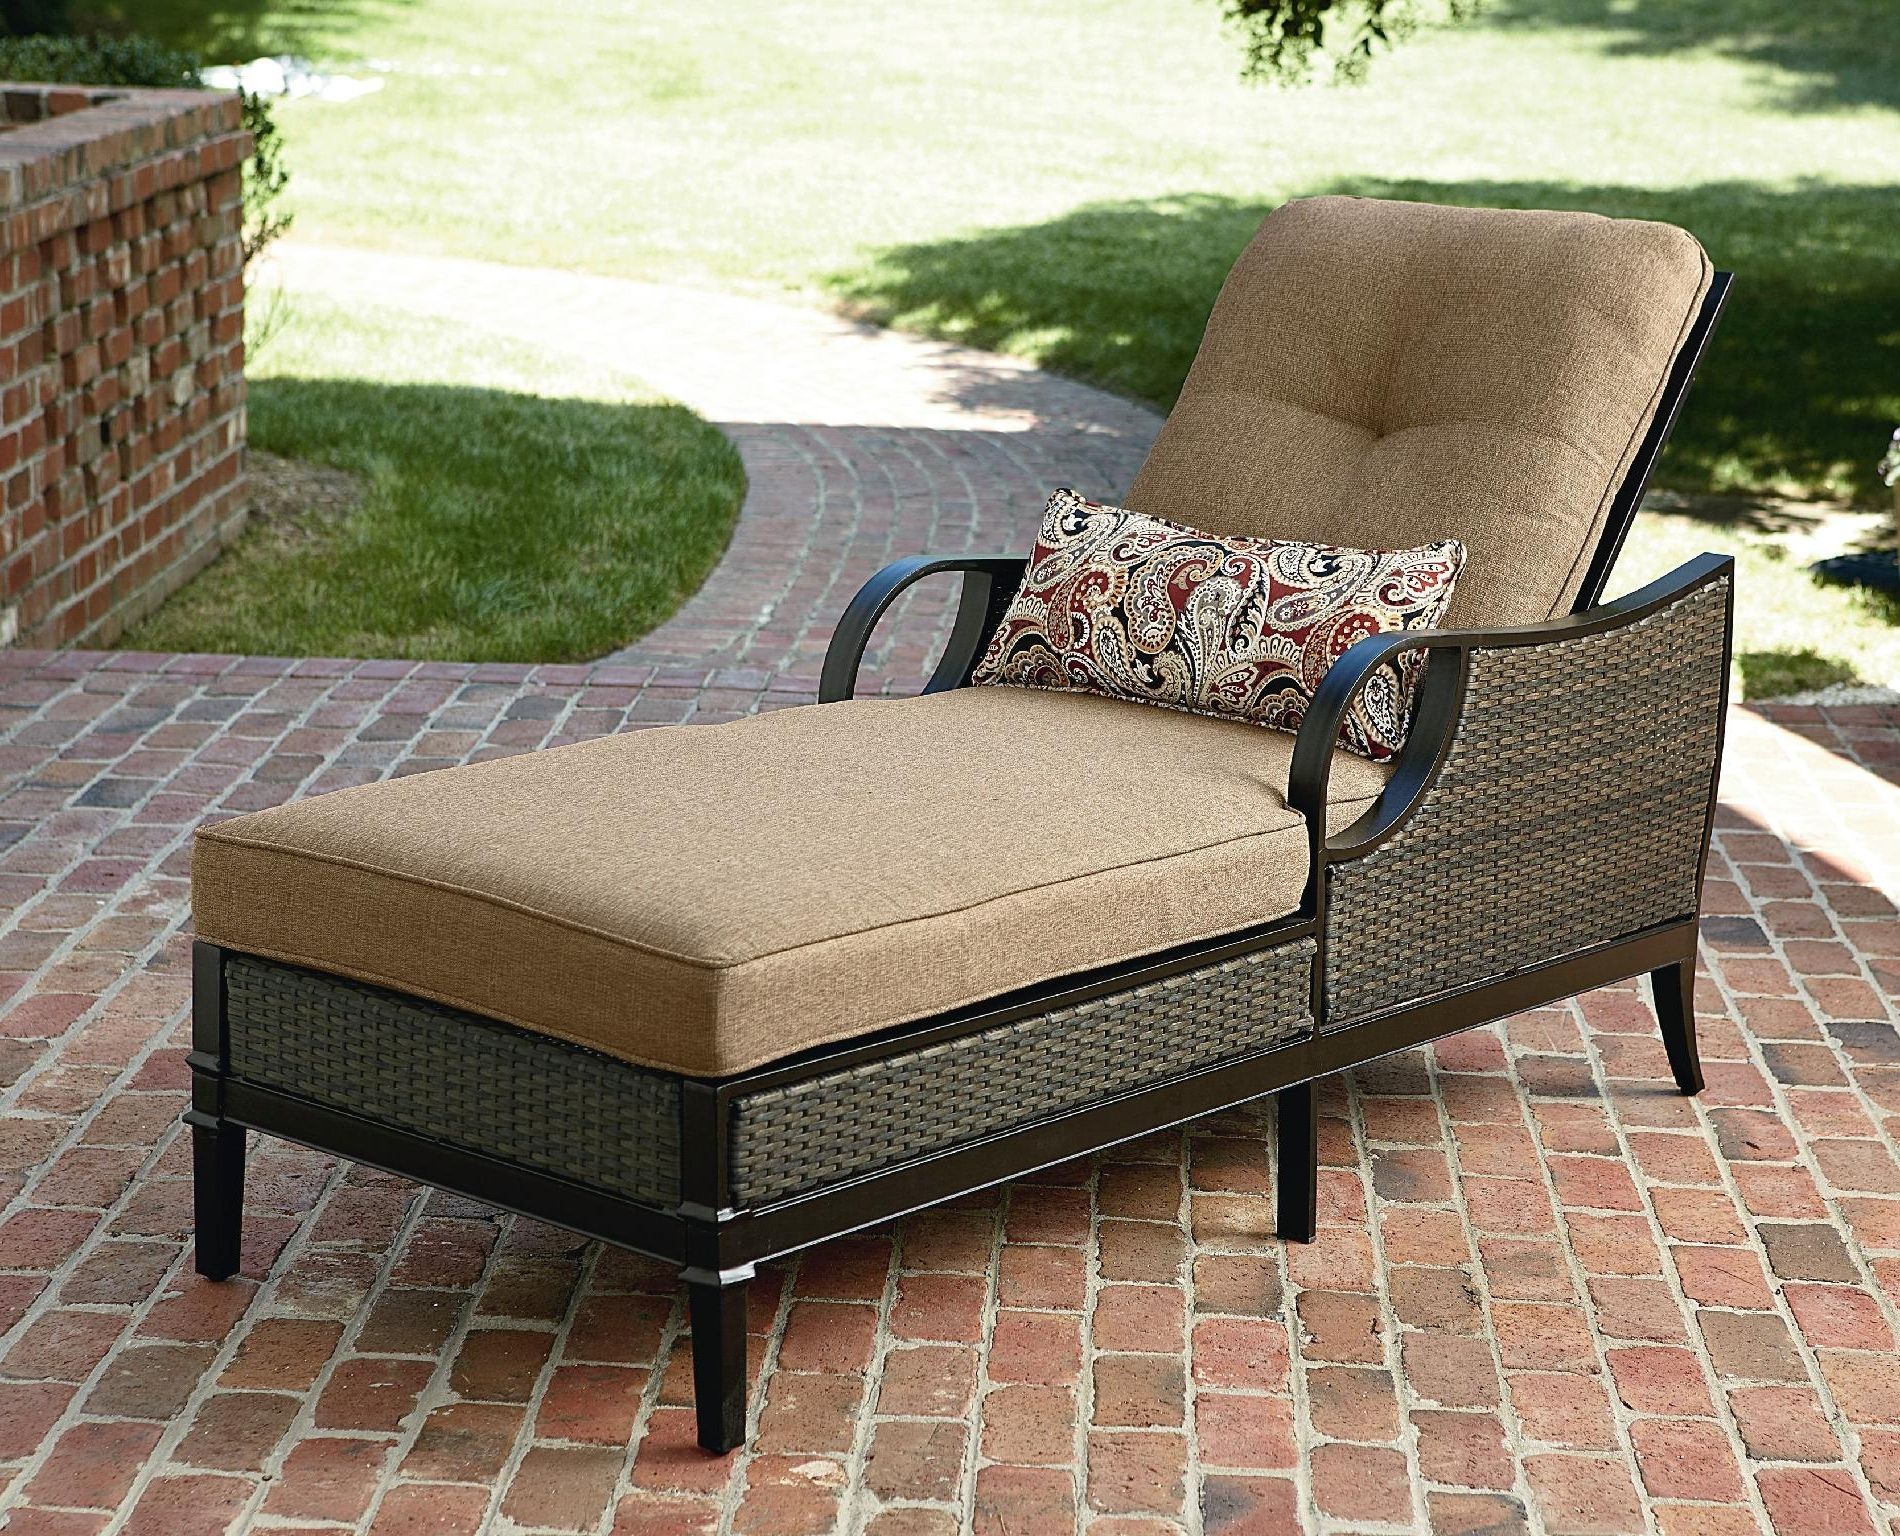 Current Comfortable Outdoor Chaise Lounge Chairs With Regard To Patio Lounge Chairs For Two • Lounge Chairs Ideas (View 4 of 15)